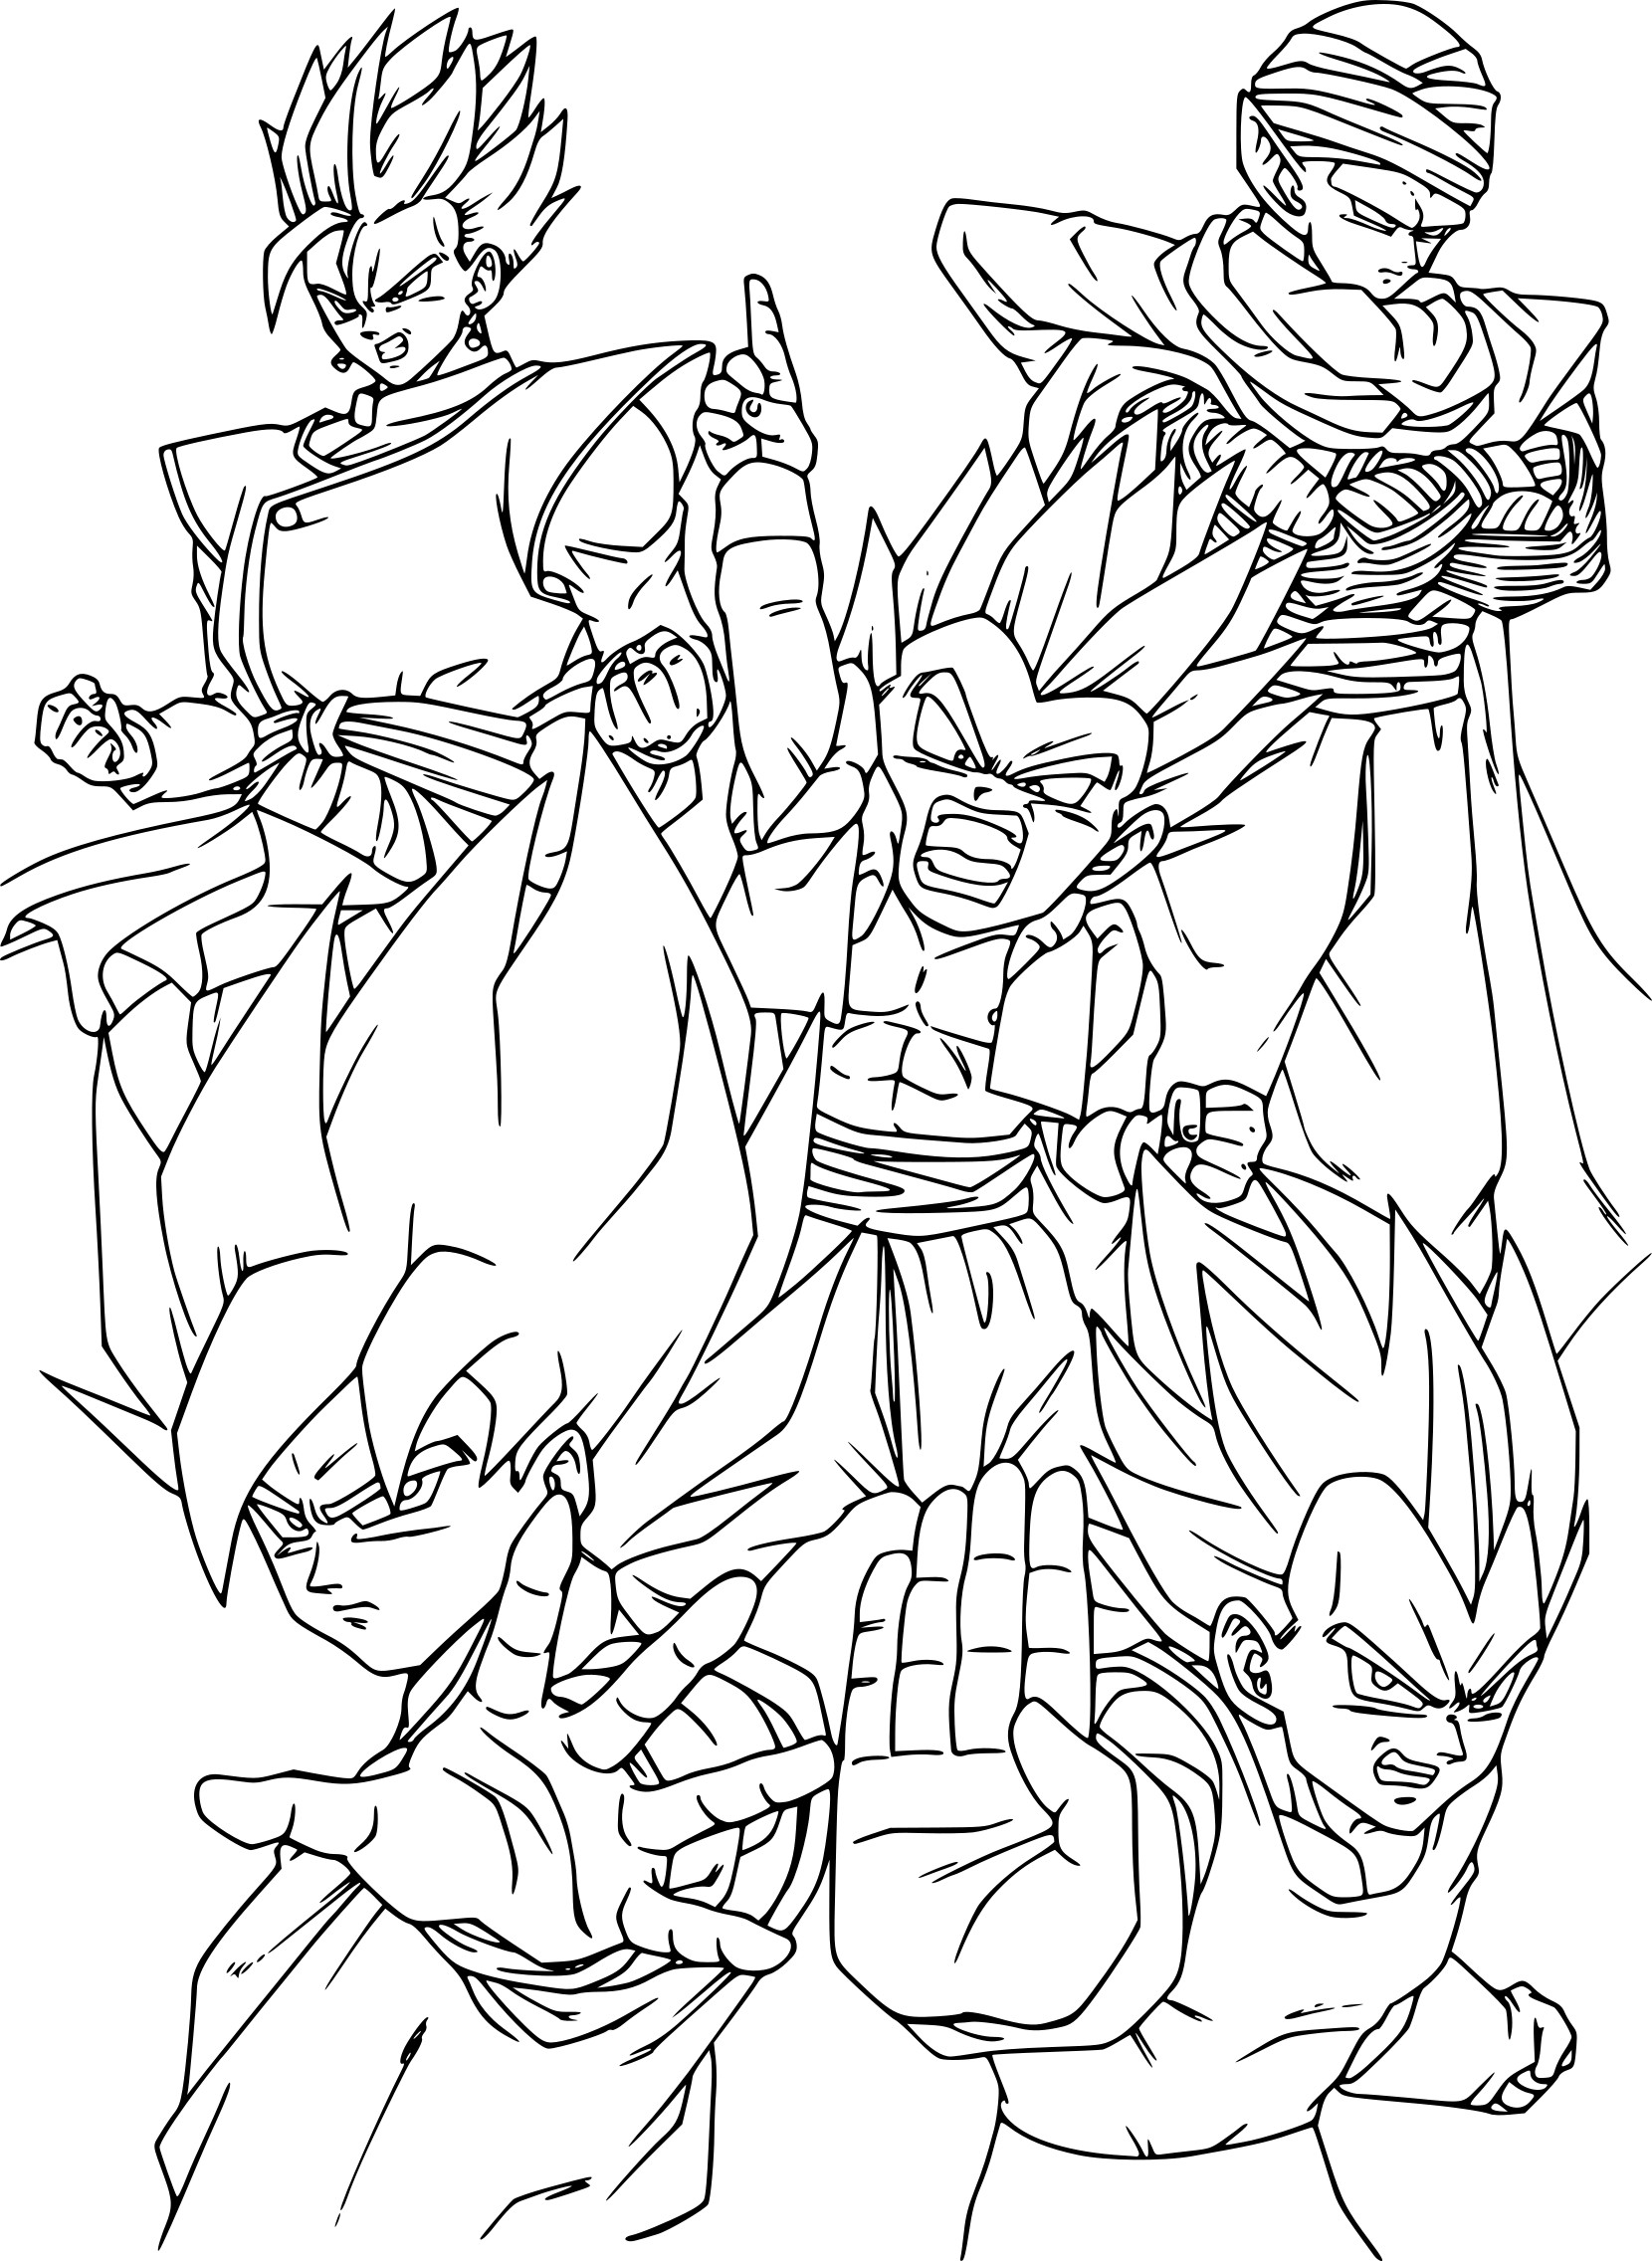 Coloriage Dragon Ball Z A Imprimer Sur COLORIAGES